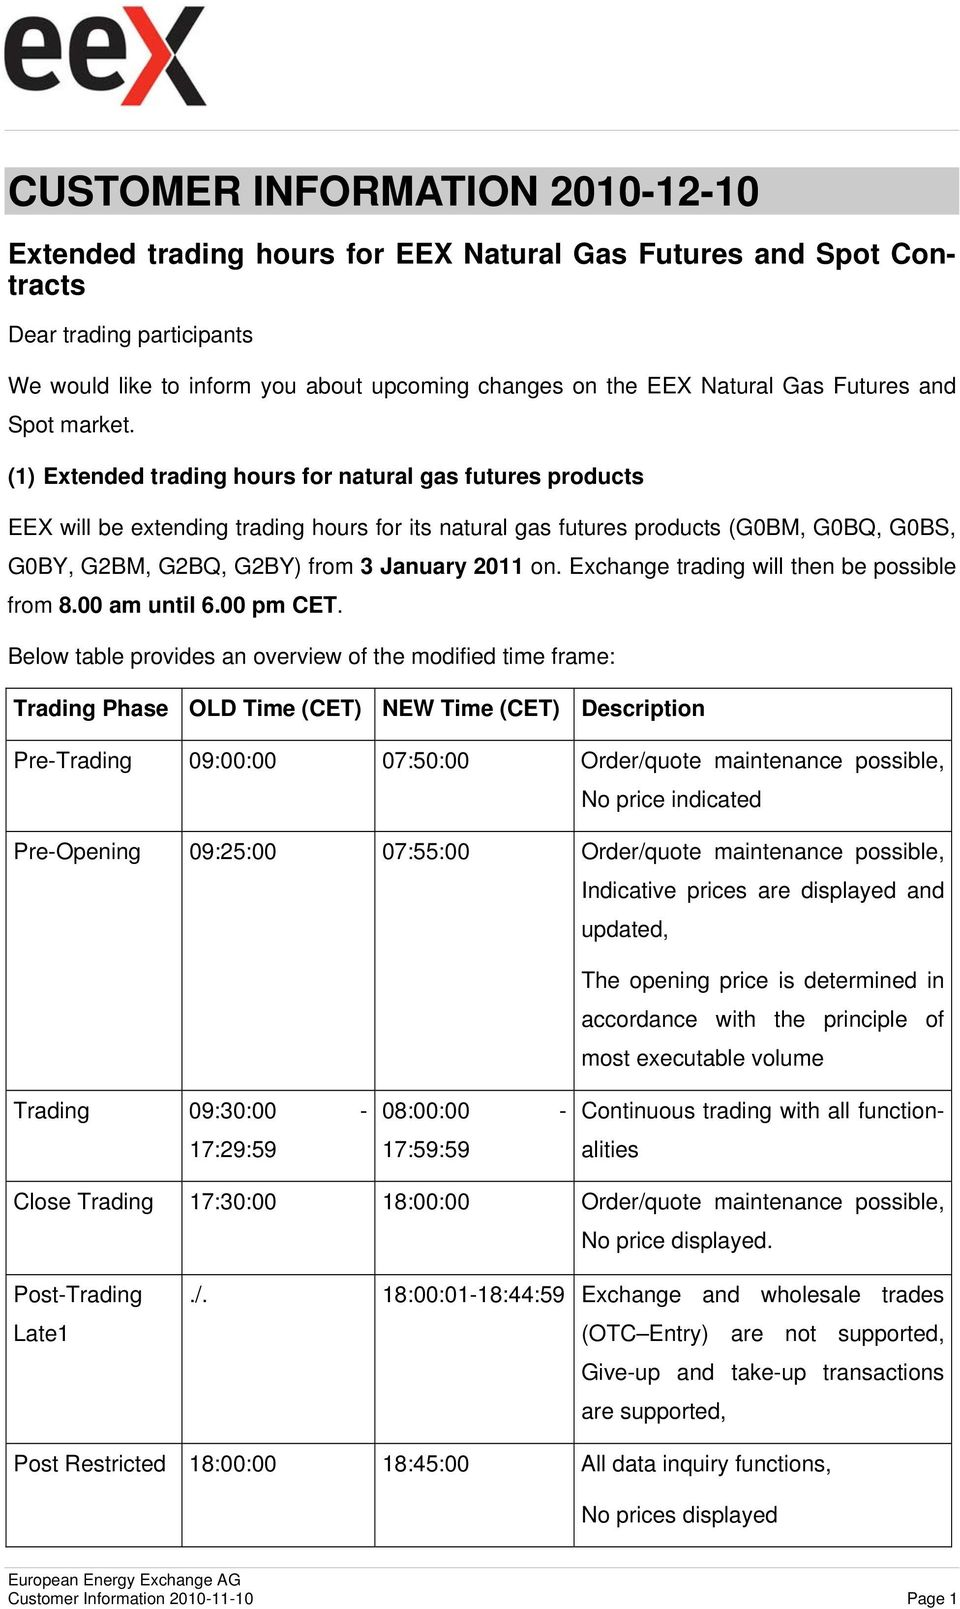 (1) Extended trading hours for natural gas futures products EEX will be extending trading hours for its natural gas futures products (G0BM, G0BQ, G0BS, G0BY, G2BM, G2BQ, G2BY) from 3 January 2011 on.